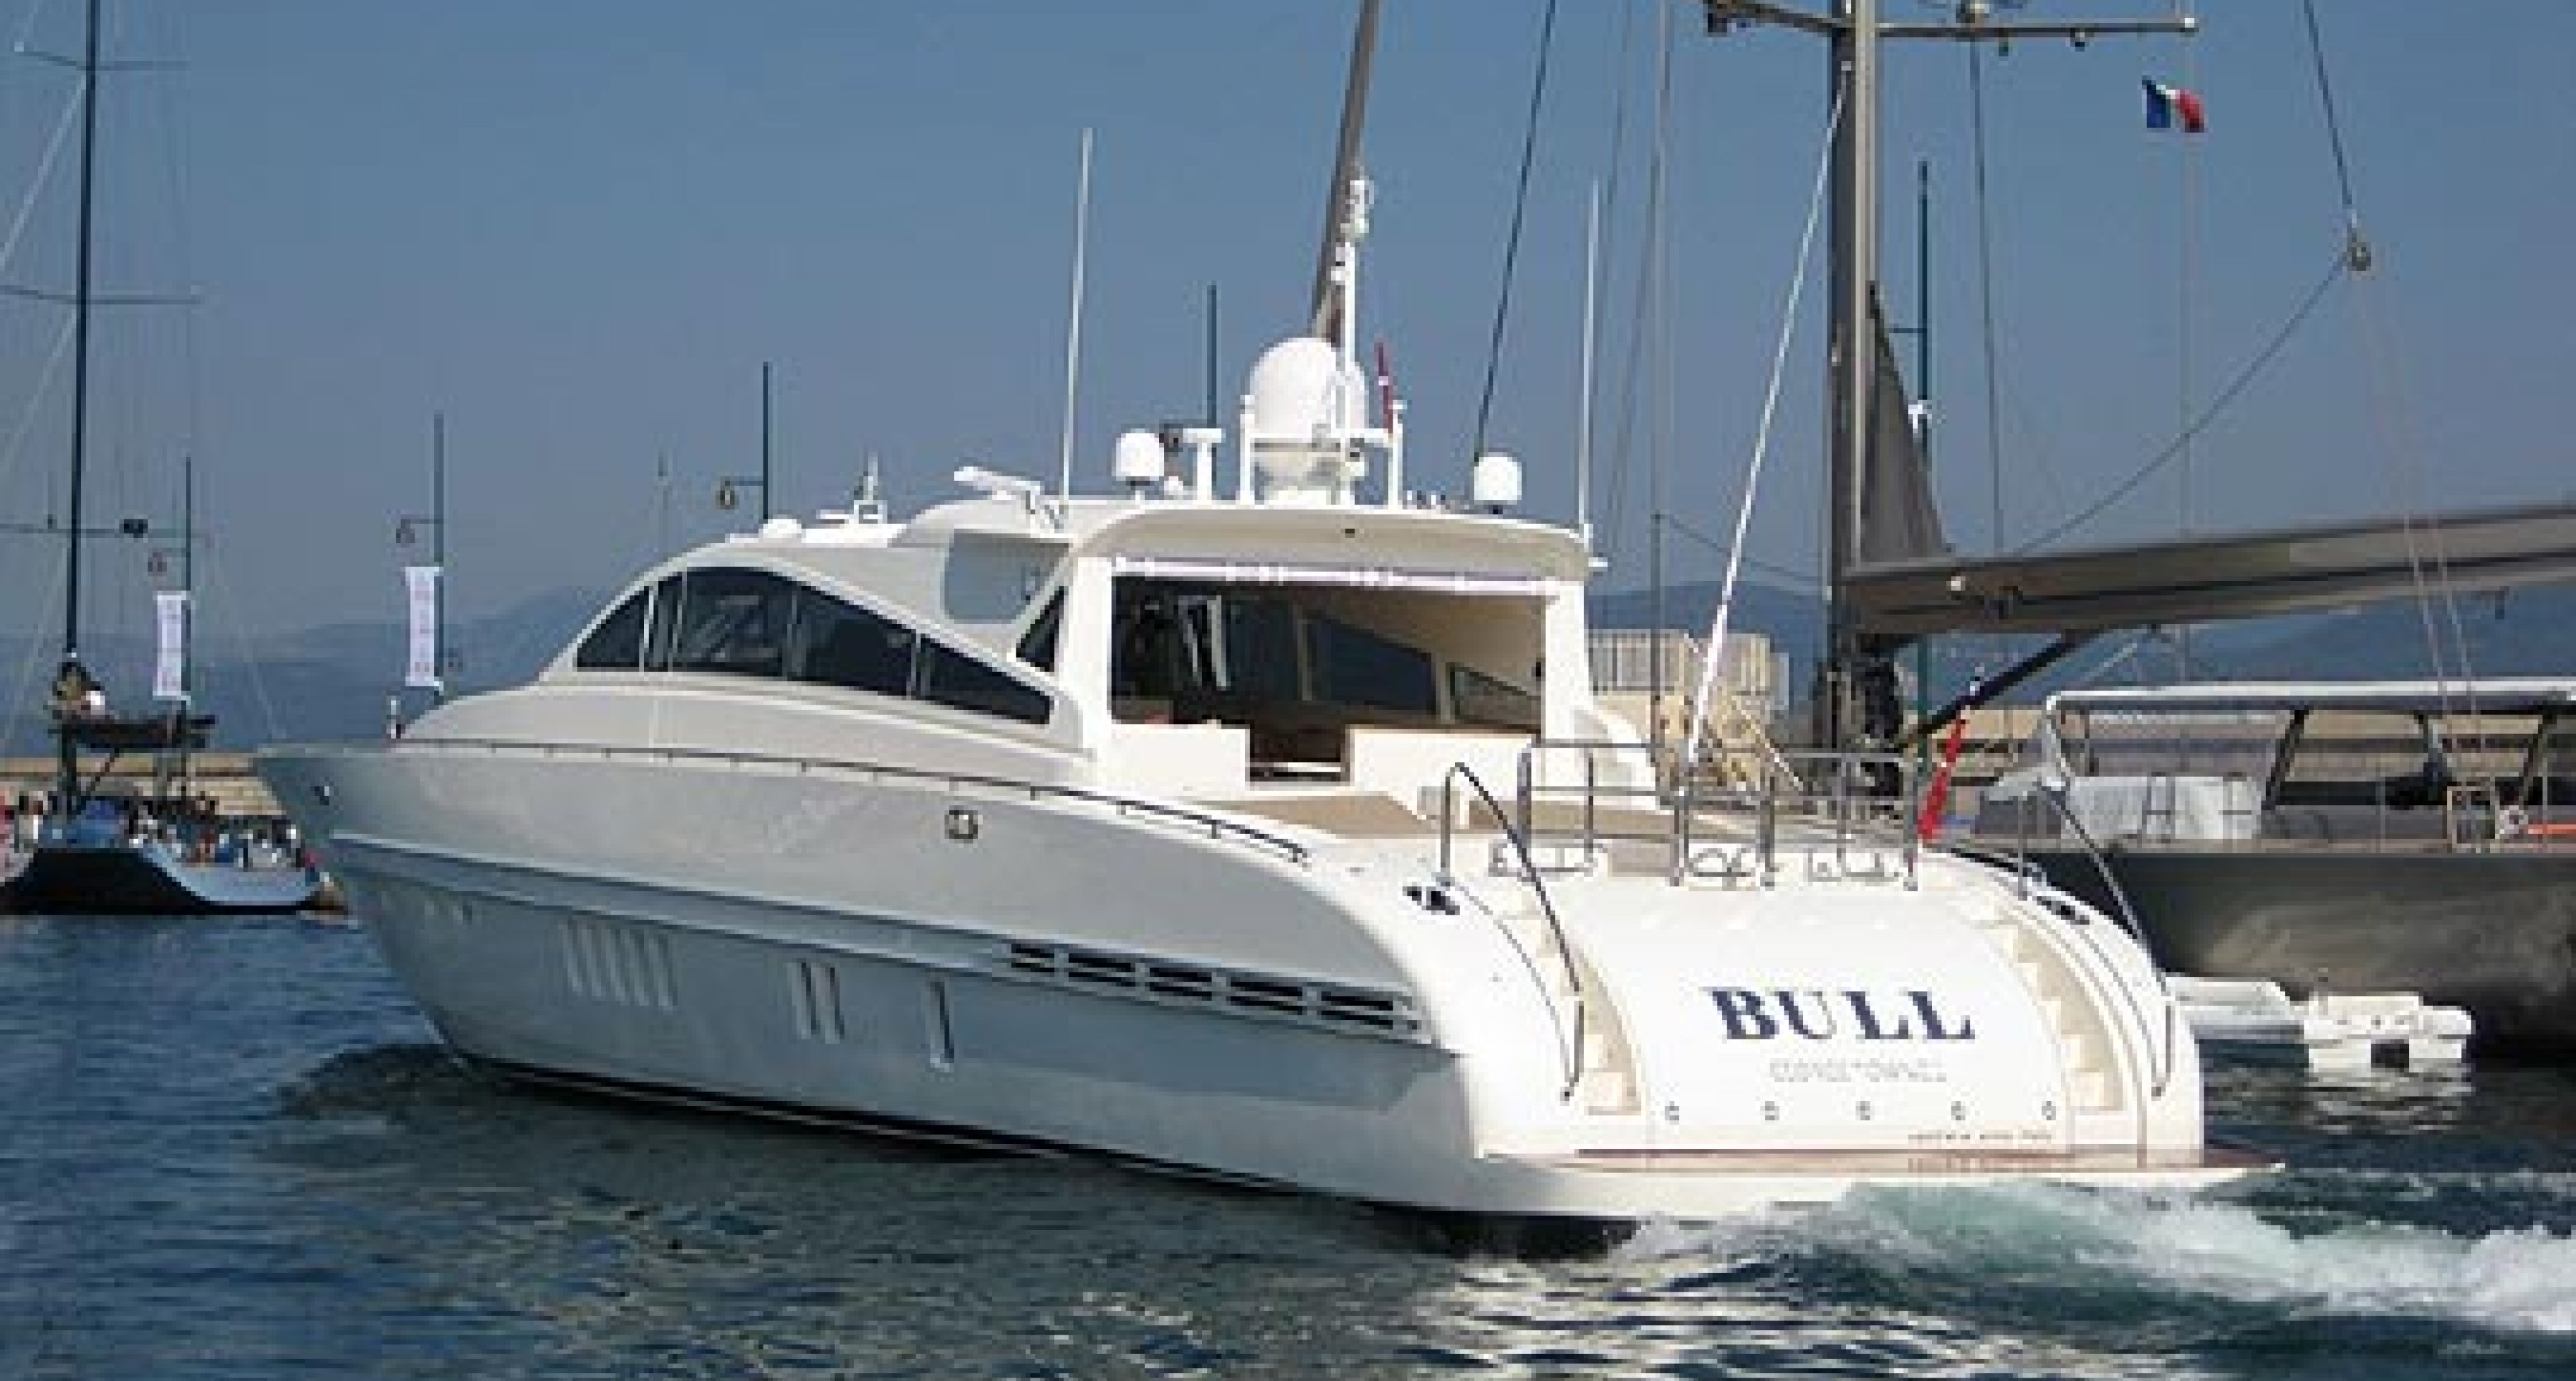 Bernie Madoff's Yacht - 'Bull' - To Be Sold